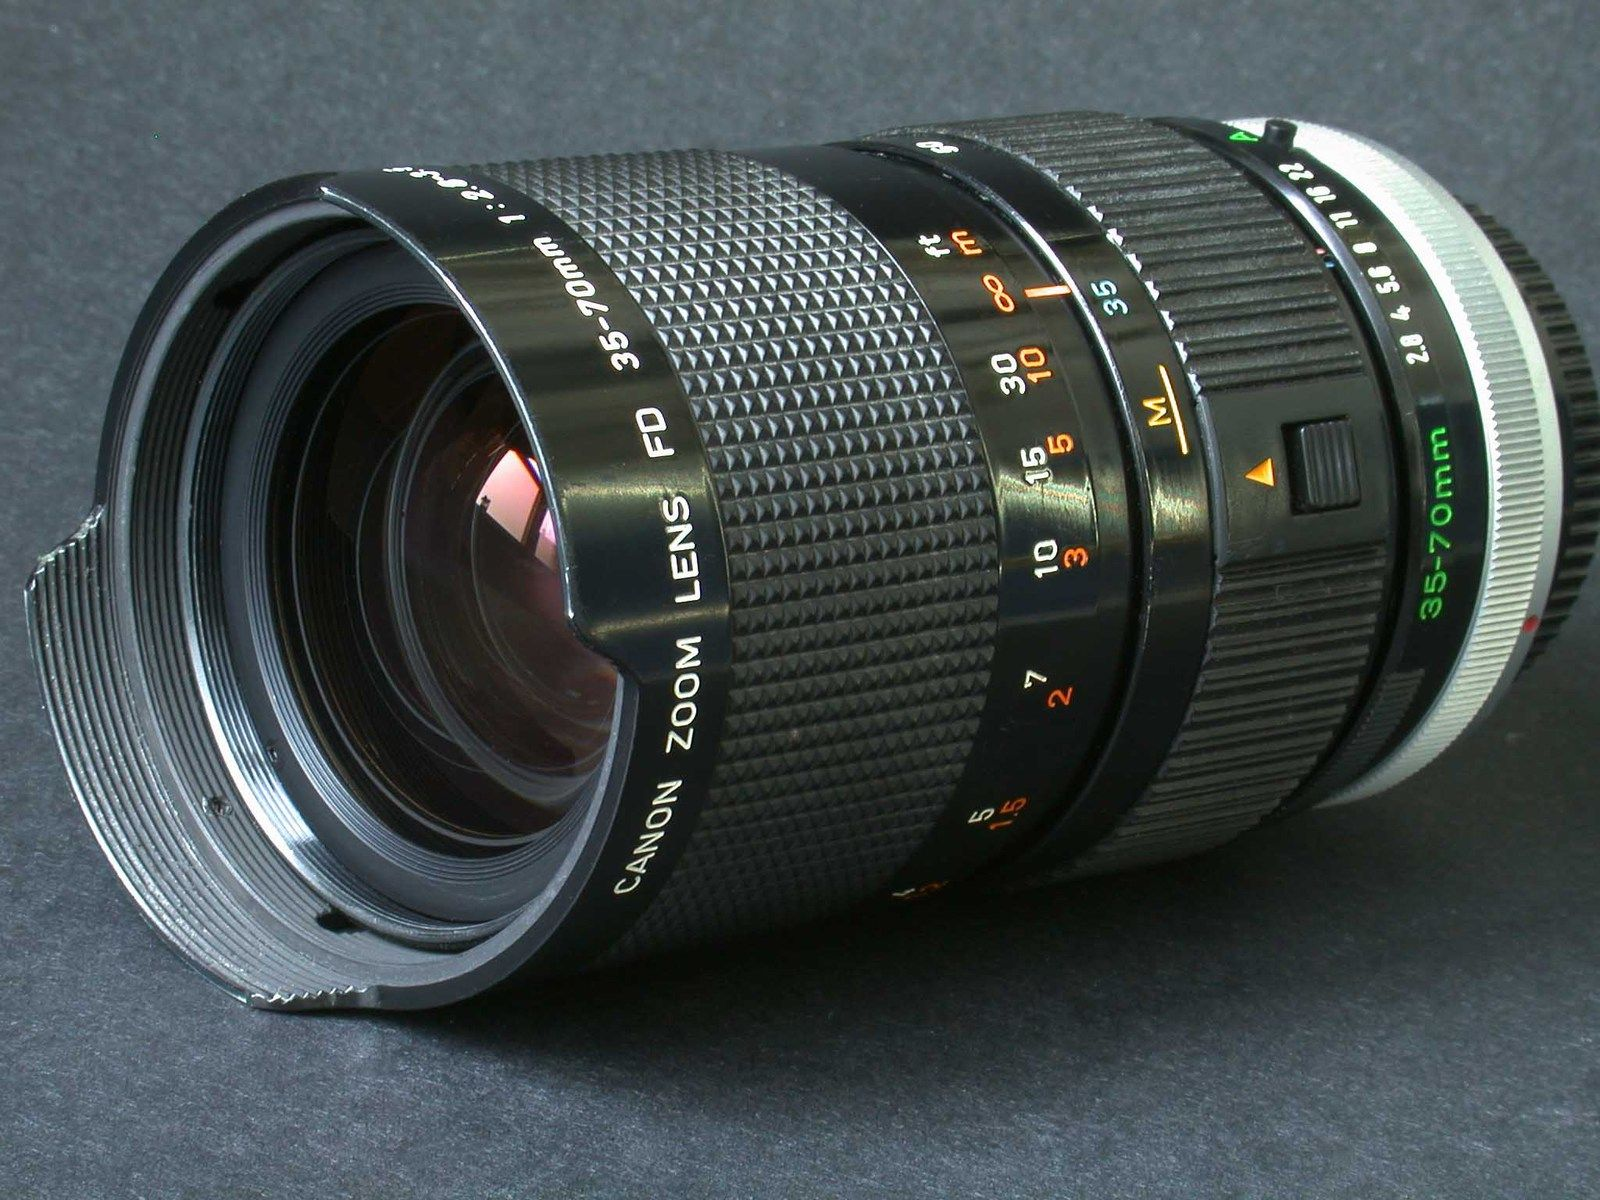 Canon Fd 35 70mm F 2 8 3 5n Macro Zoom Yes Photography Gear Lenses Photography Used Cameras